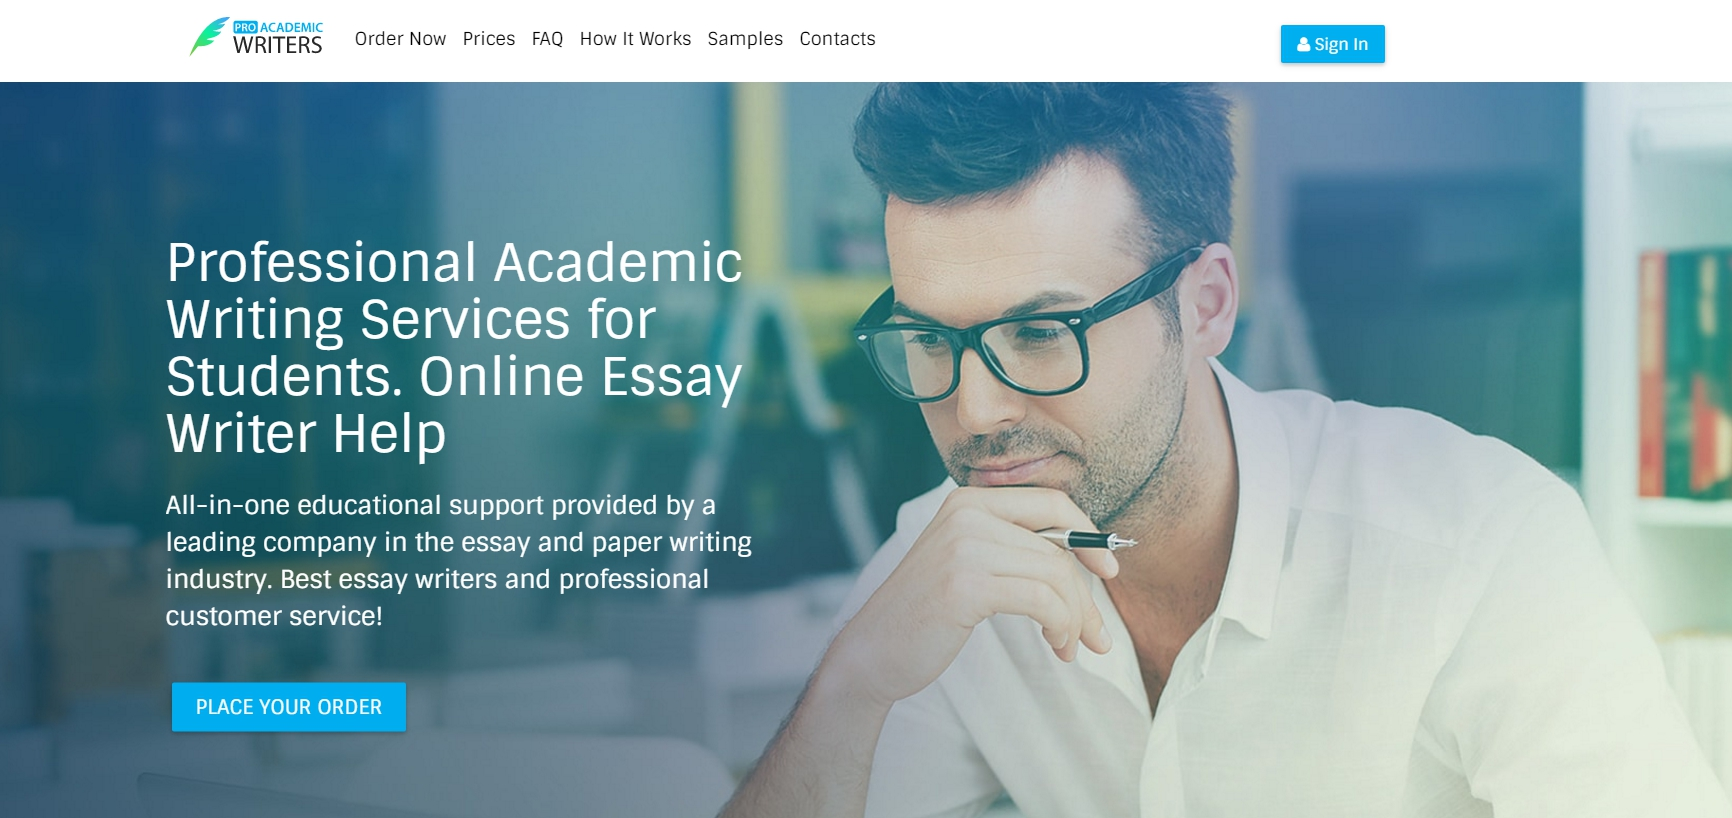 017 Pro Essay Writer Example Academic Sensational Discount Code Full